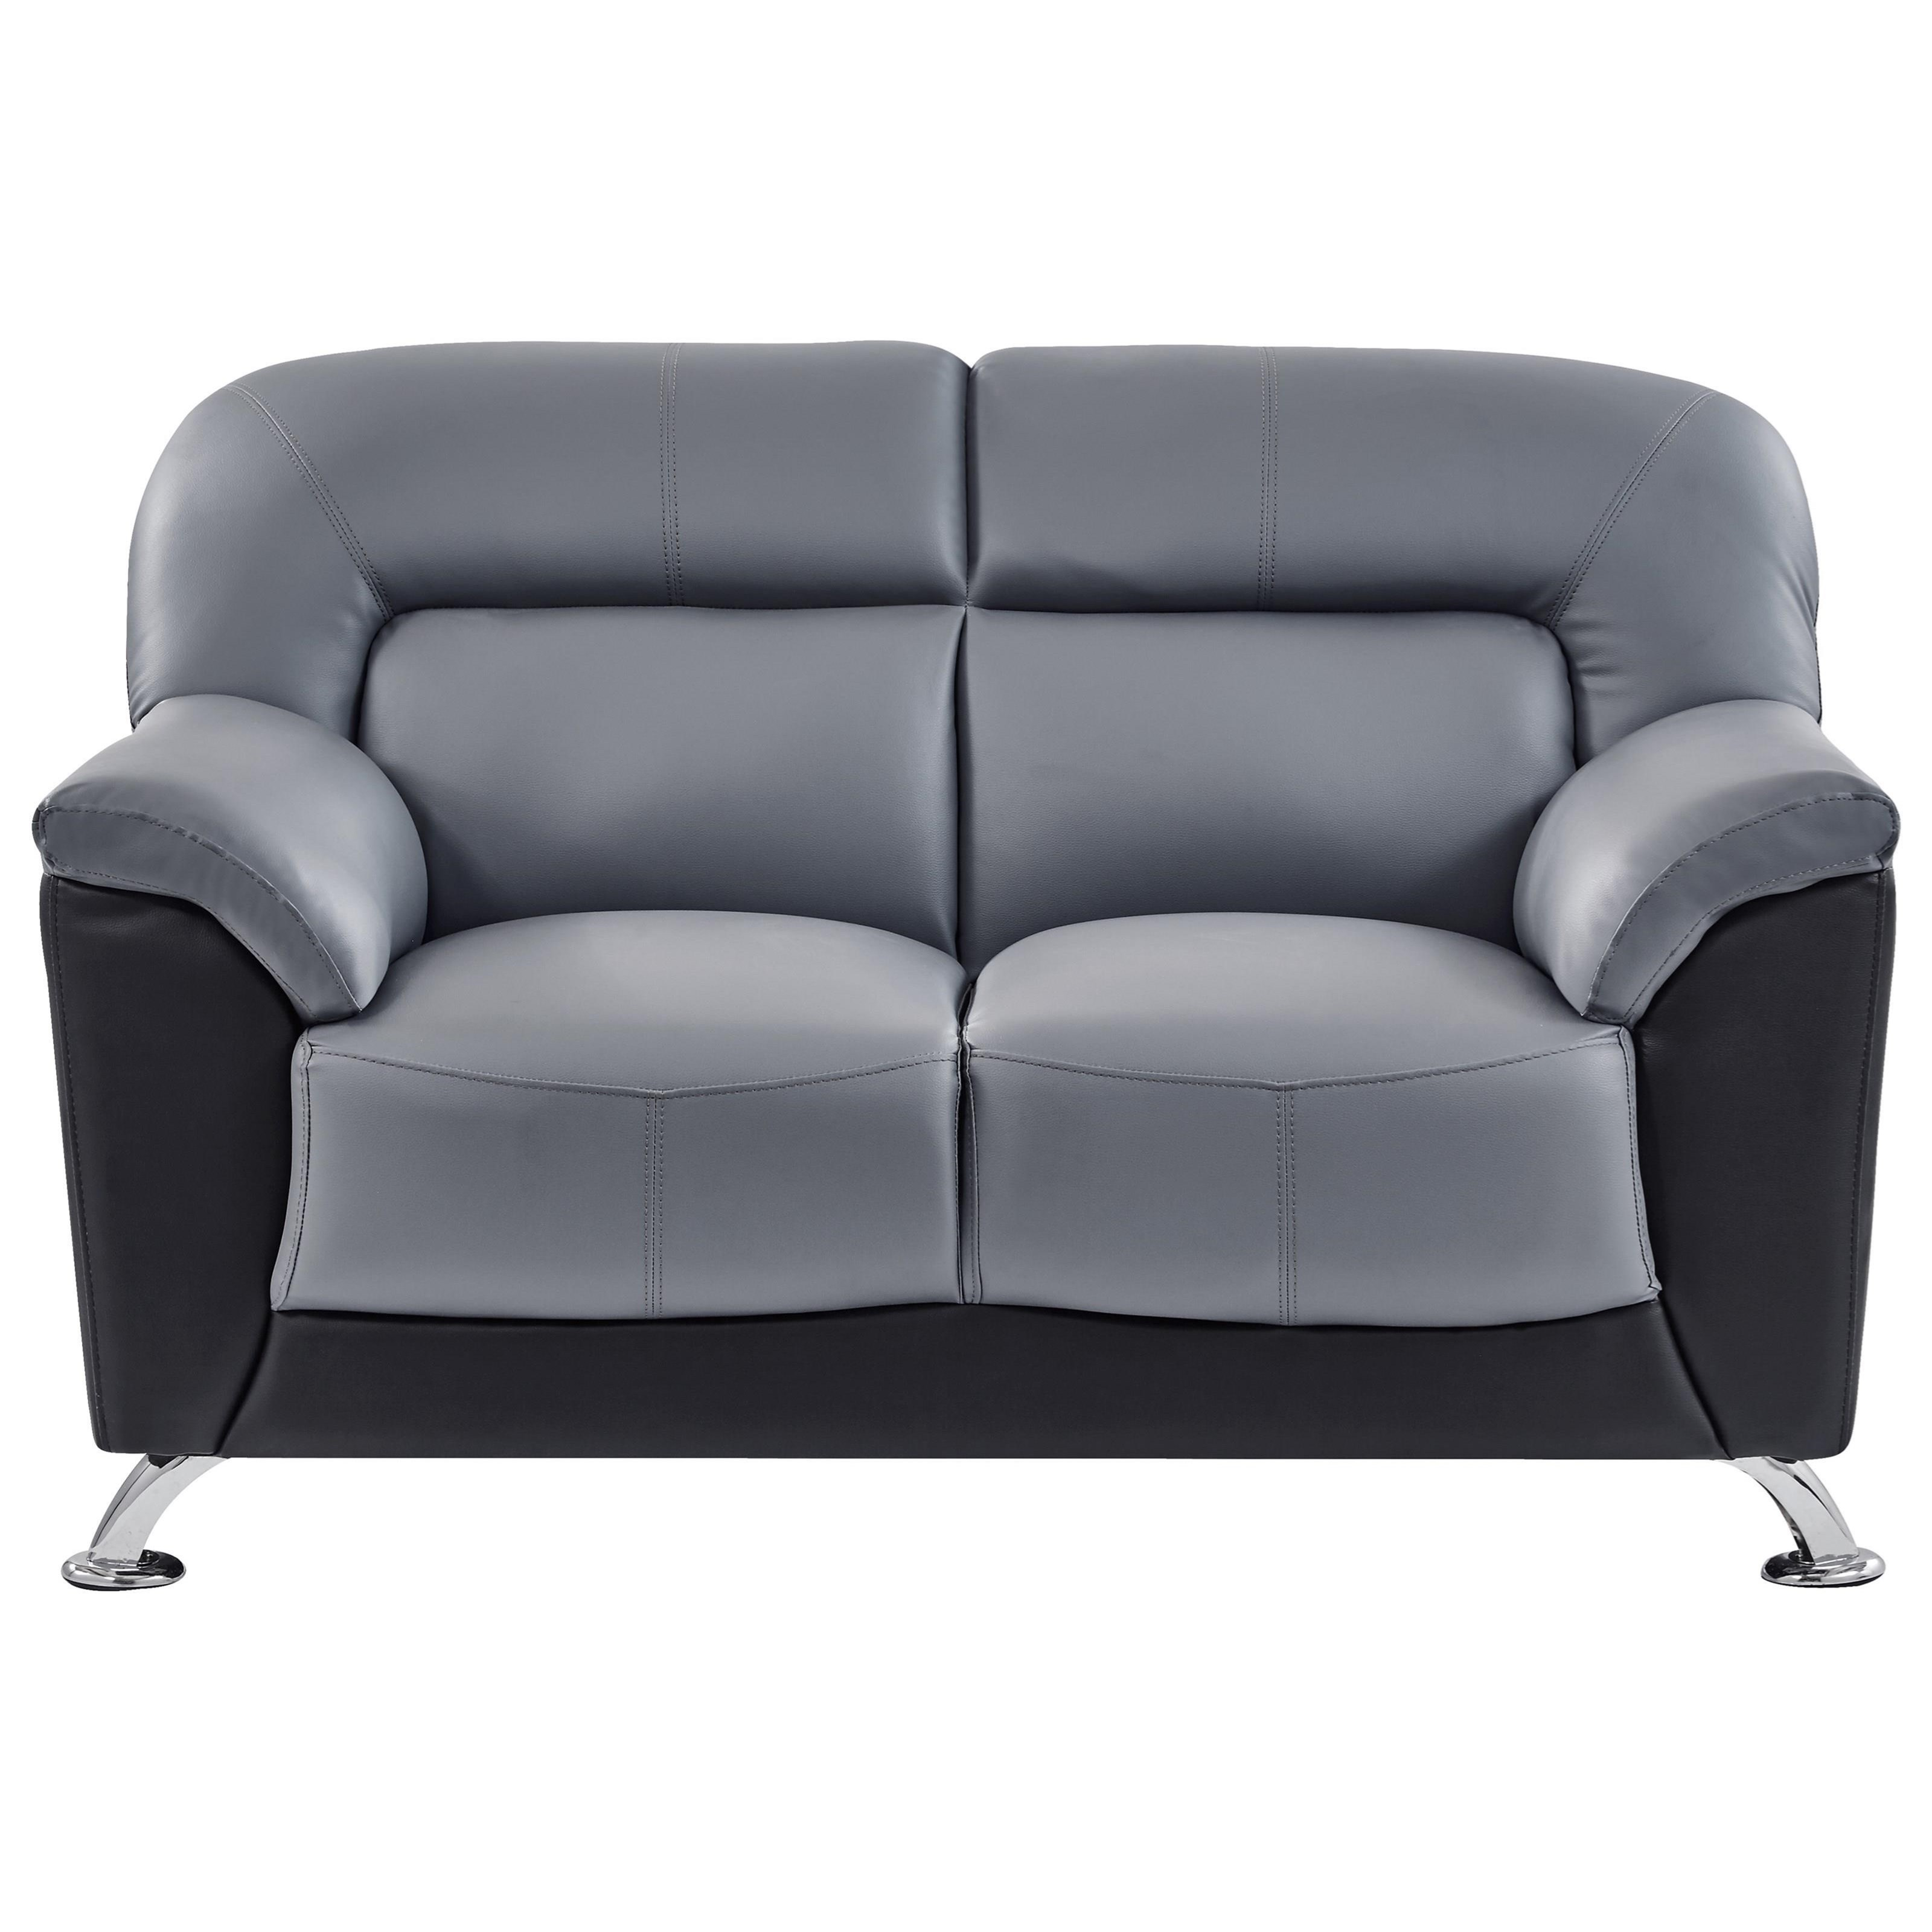 Global Furniture U9102 Casual Contemporary Loveseat with Chrome ...